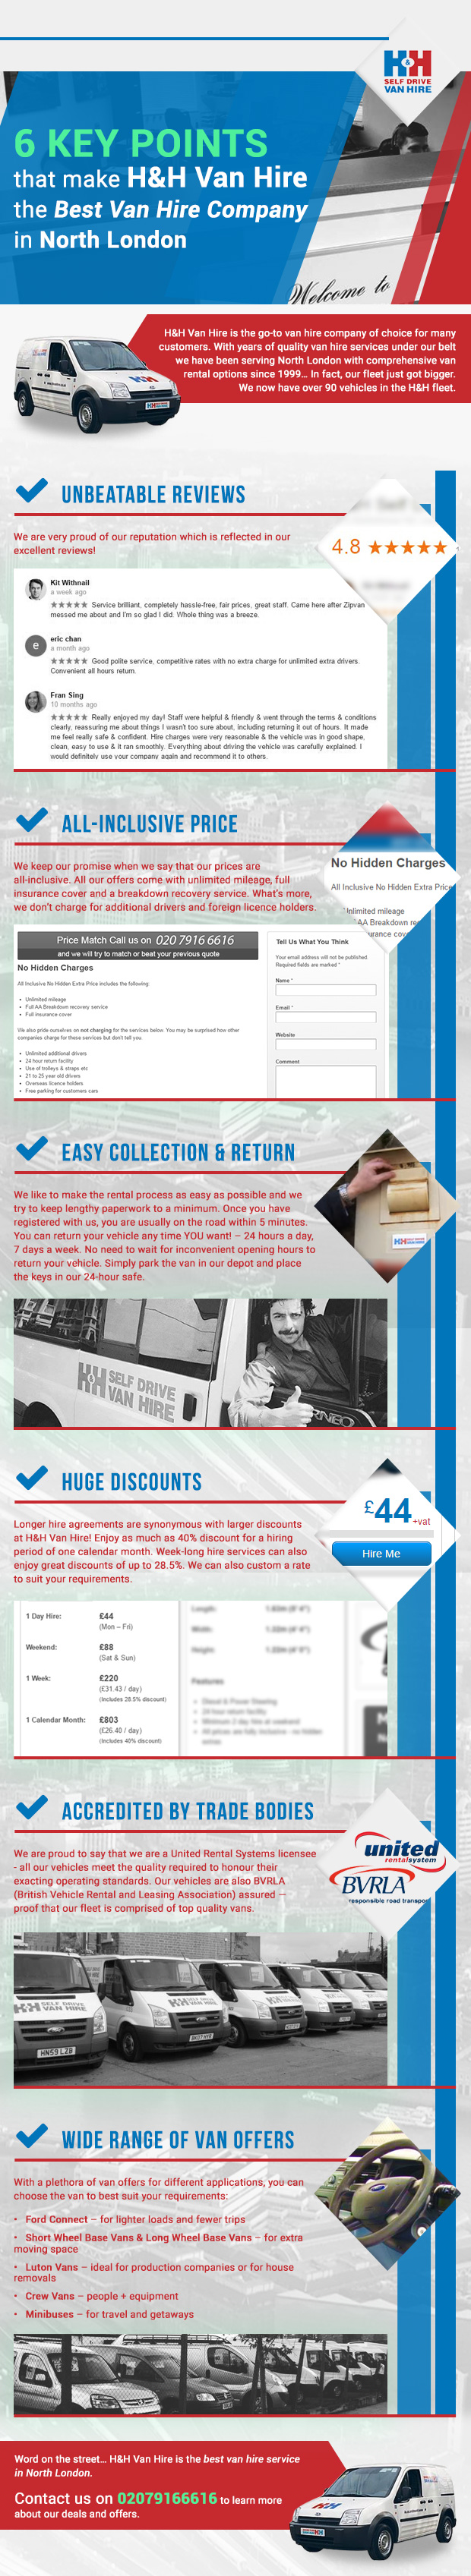 6 Key Points that Make H&H Van Hire the Best Van Hire Company in North London